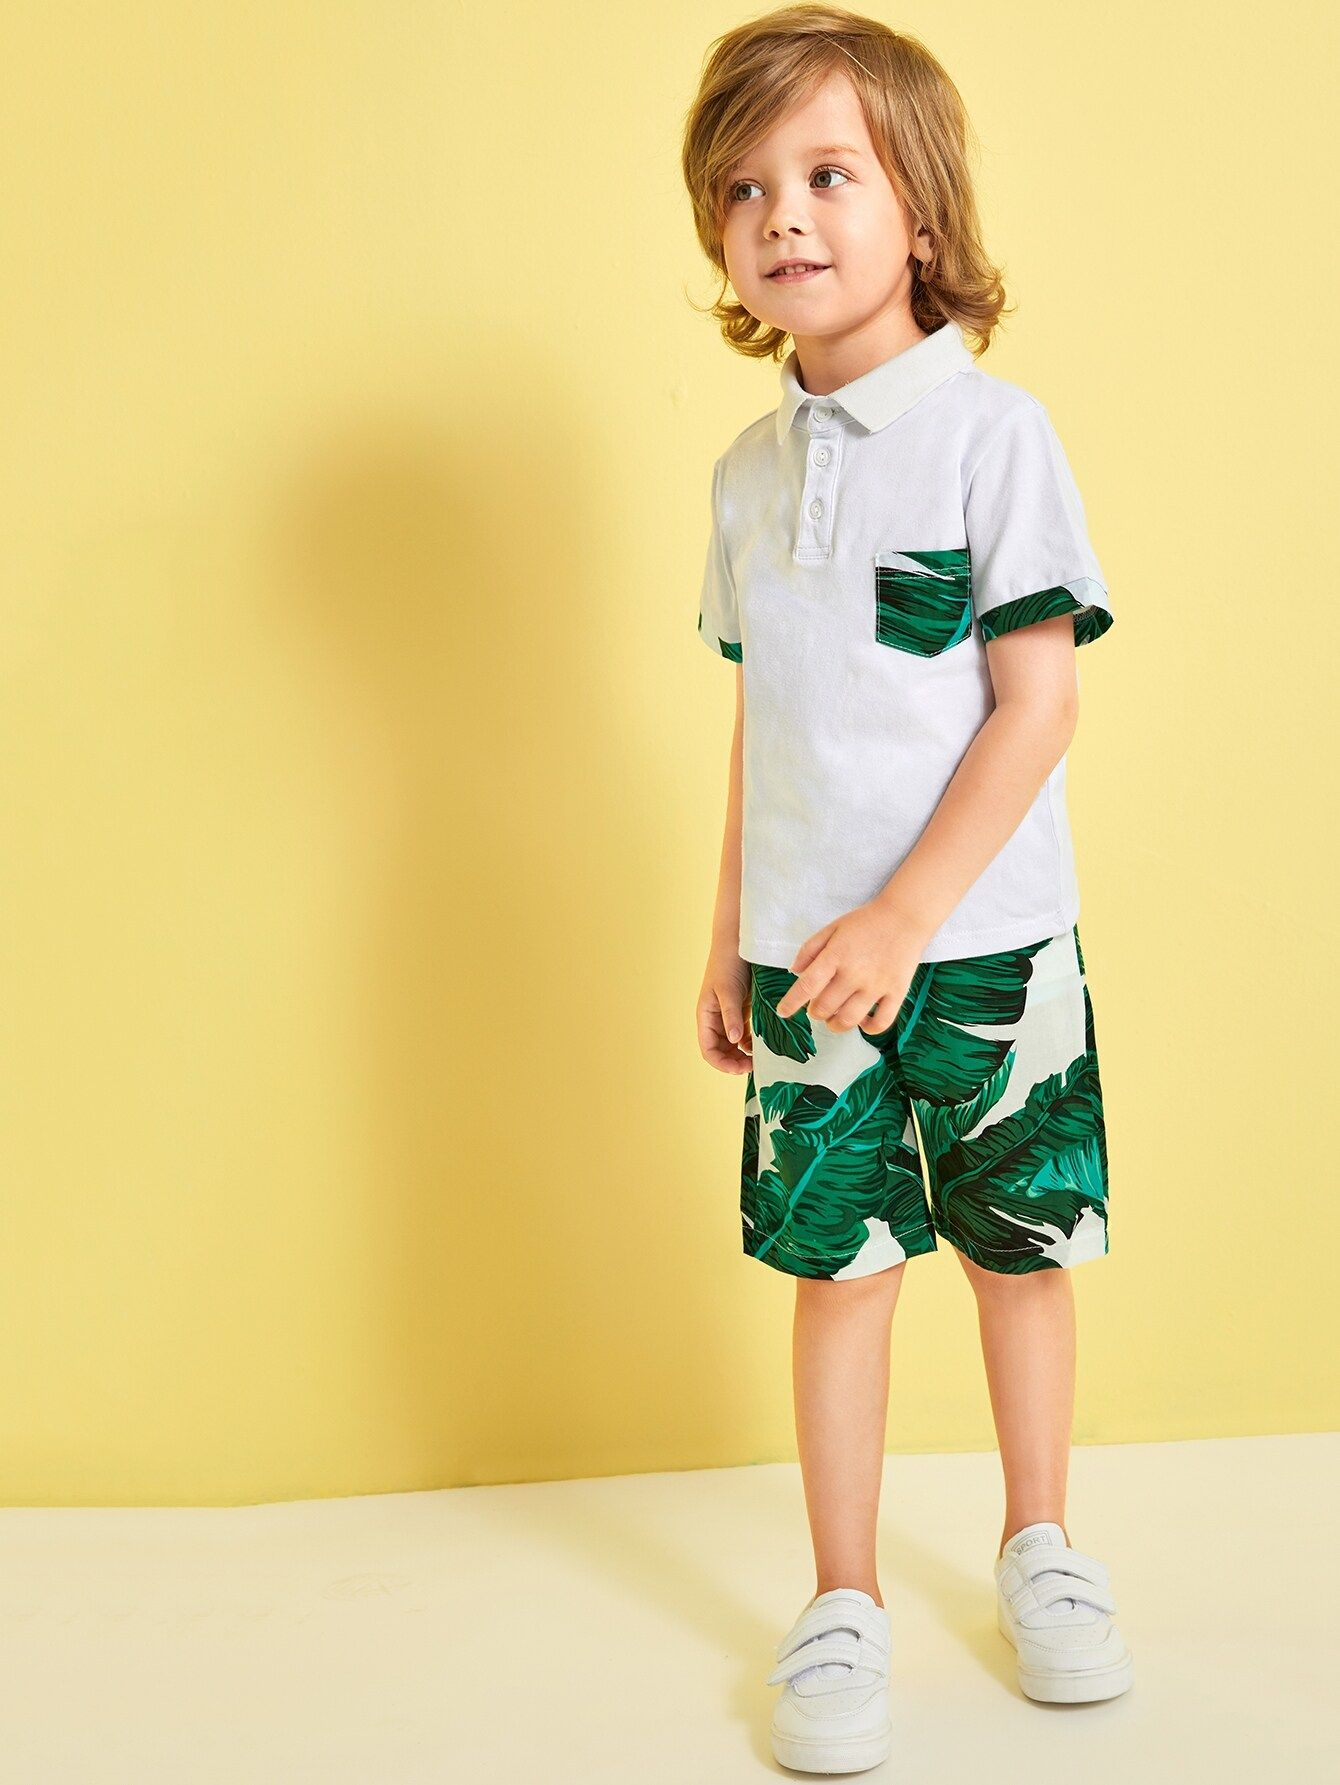 Toddler Boys Contrast Trim Polo Shirt With Tropical Print Shorts #toddlershorts